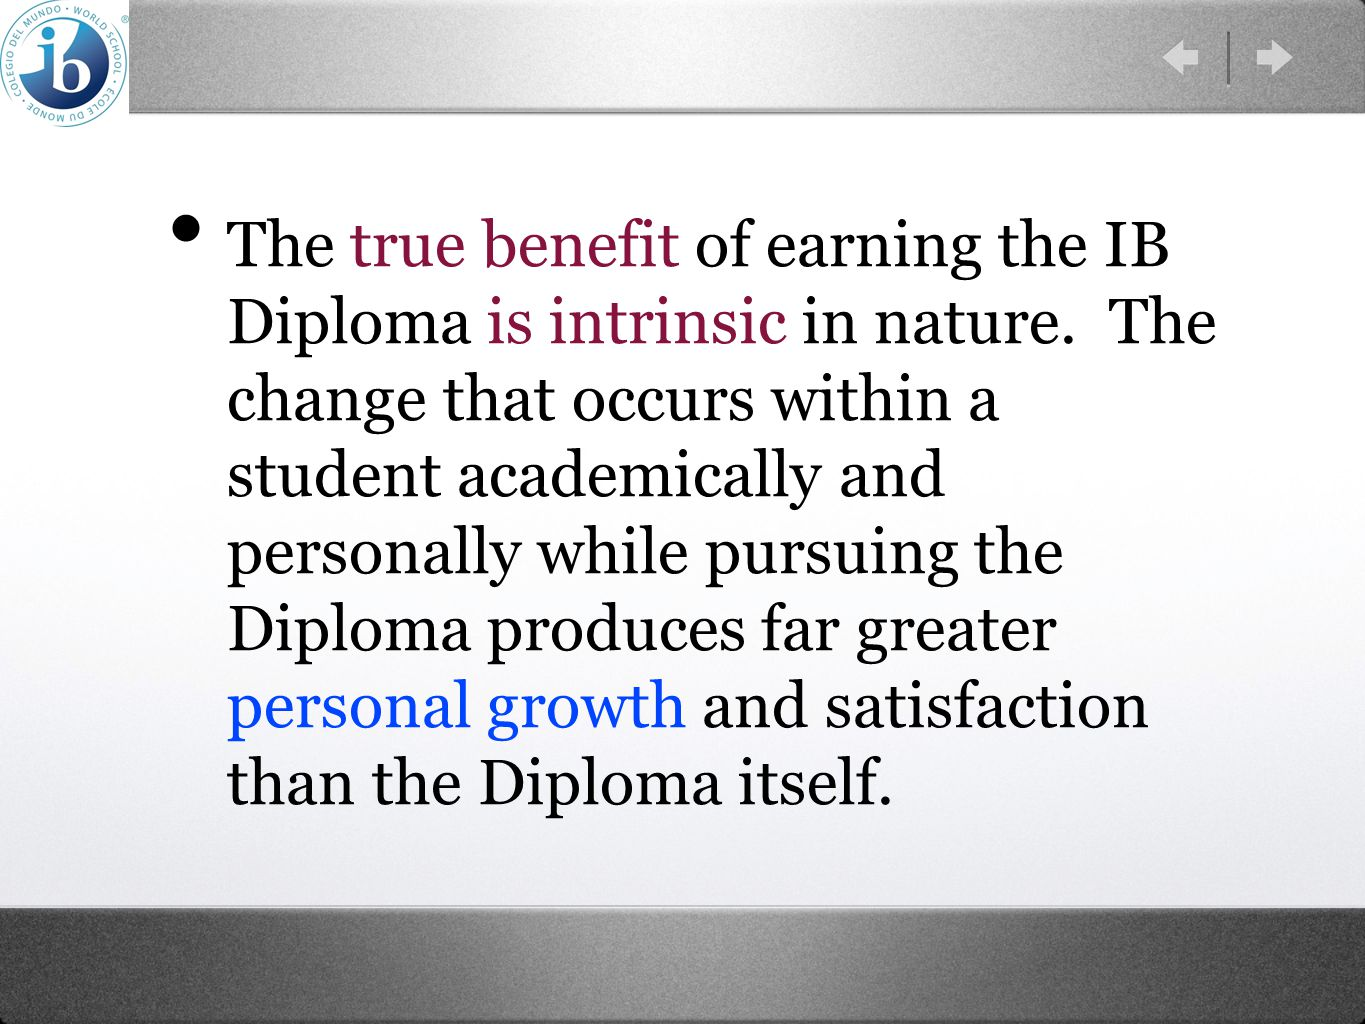 The true benefit of earning the IB Diploma is intrinsic in nature